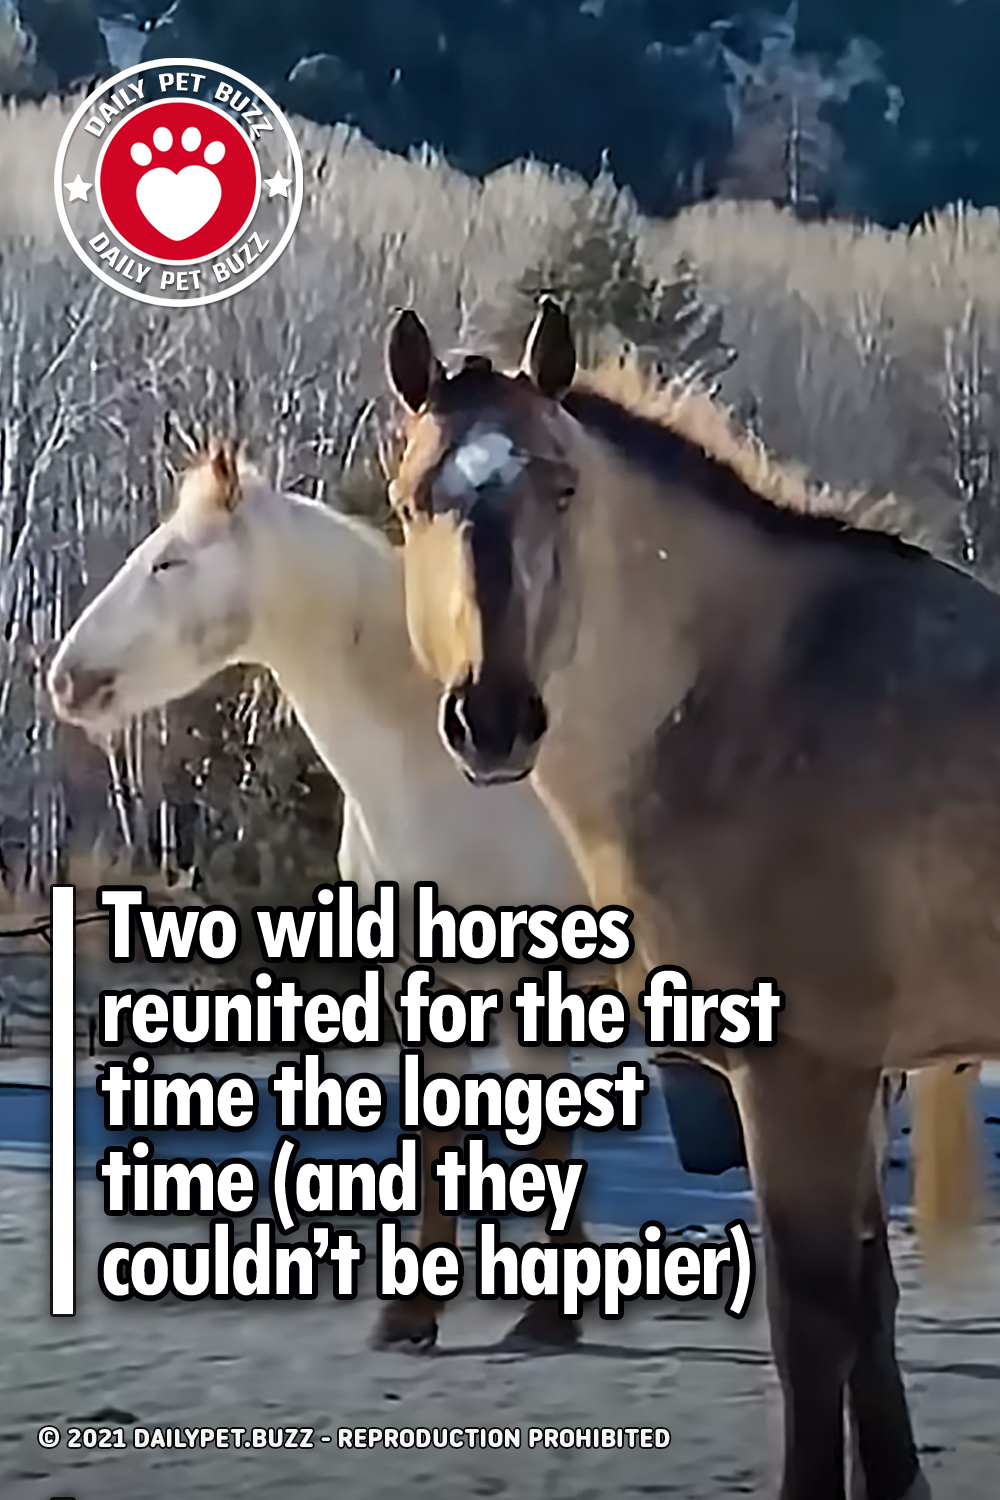 Two wild horses reunited for the first time the longest time (and they couldn't be happier)